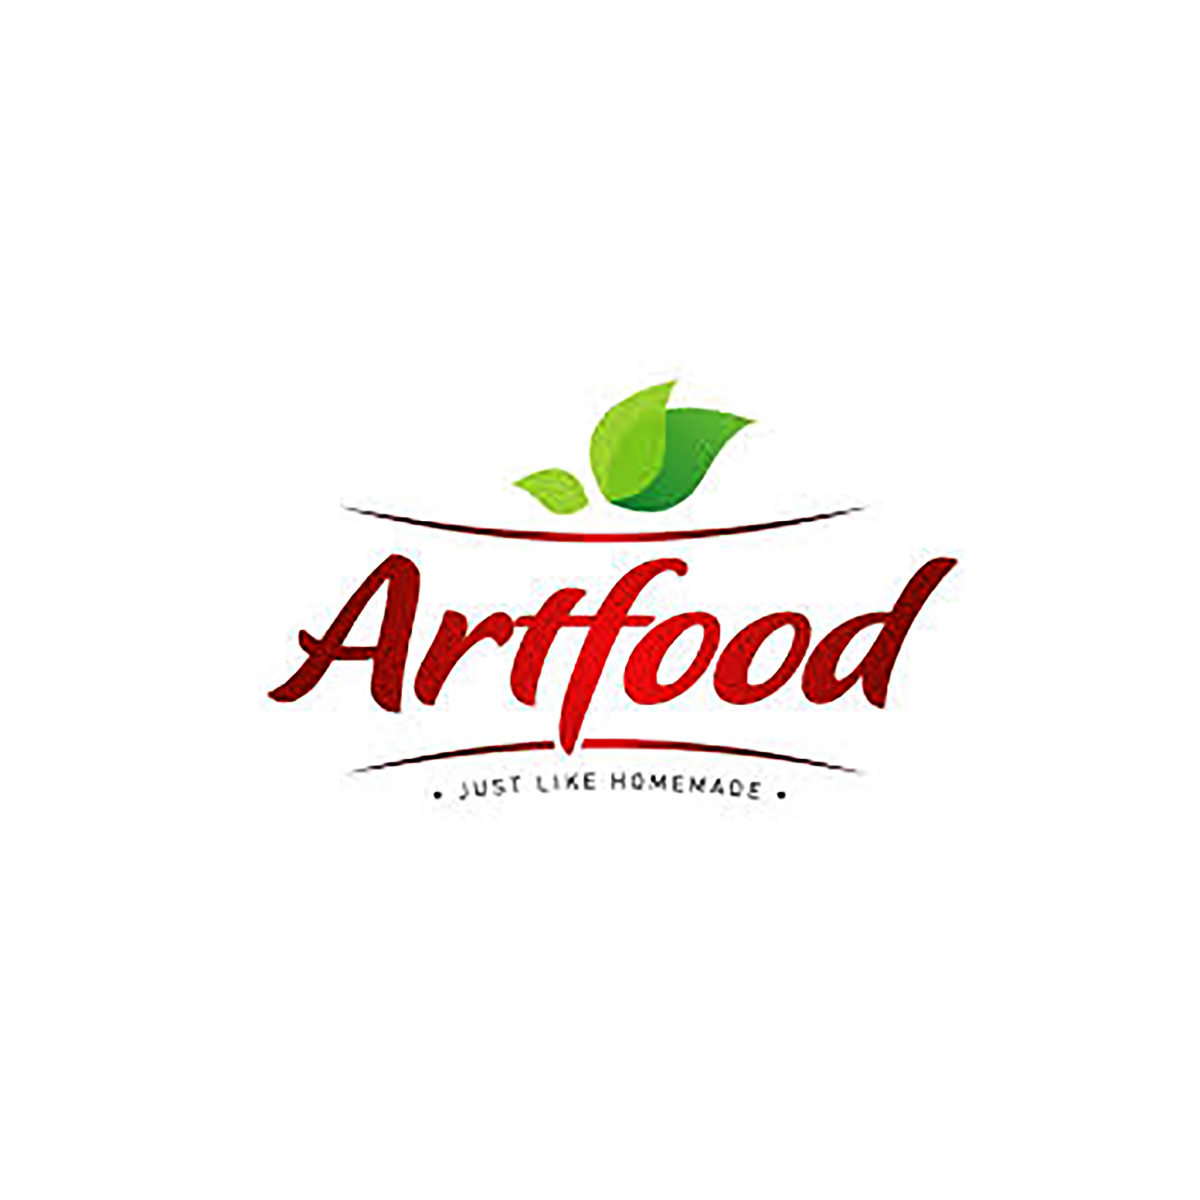 Artfood